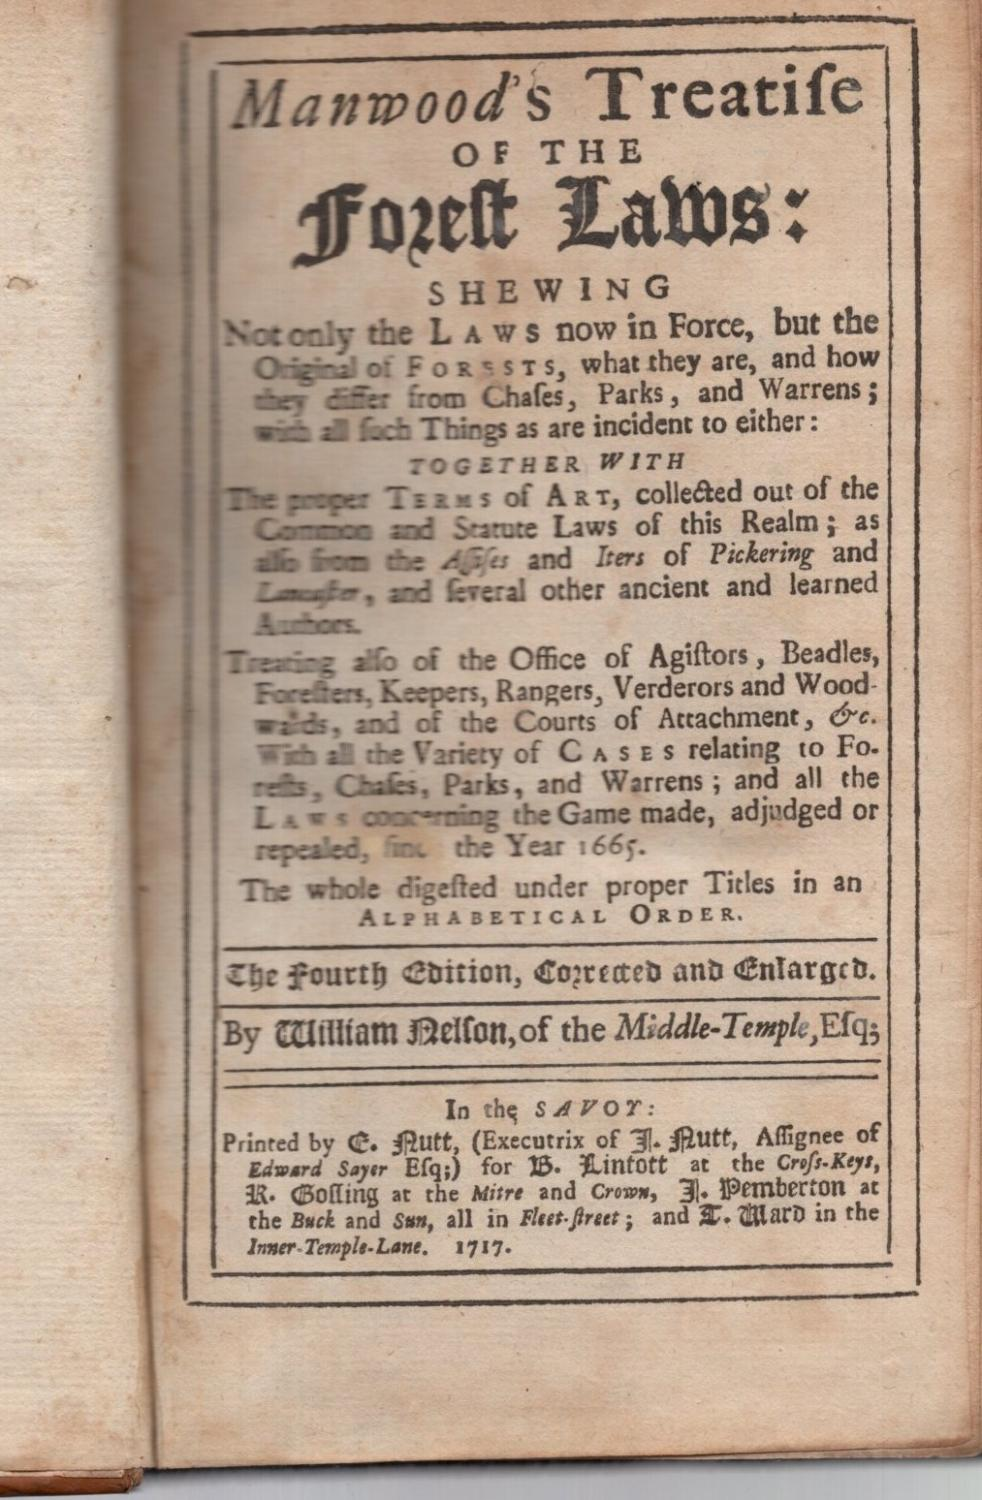 Manwood's Treatise Of The Forest Laws: Shewing Not Only The Laws Now In Force, But The Original Of Forests, What They Are, And How They Differ From C